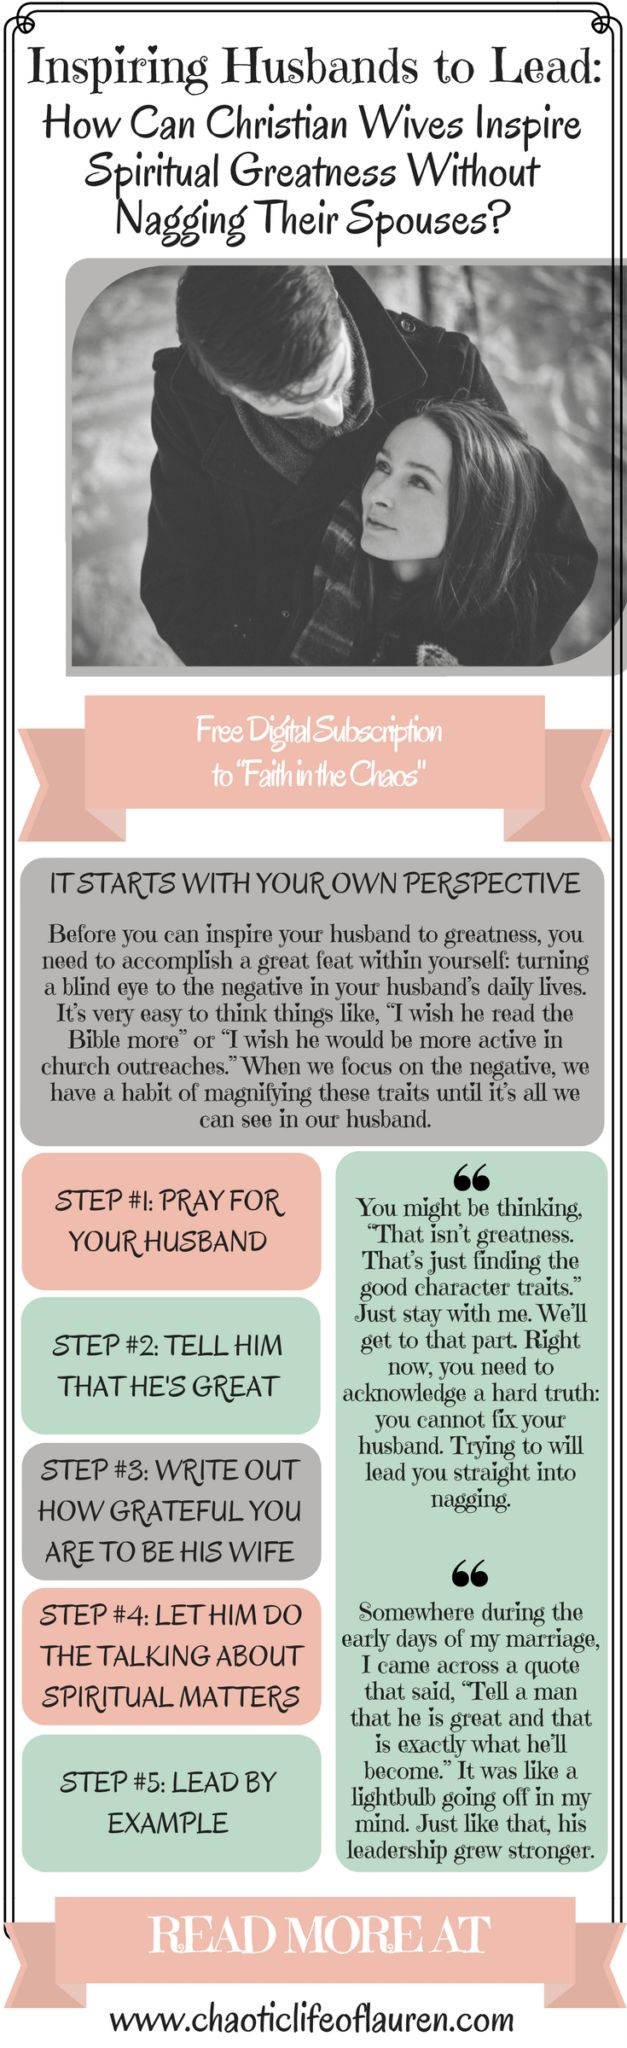 Inspiring Husbands to Lead Without Nagging | Christian Marriage | Christian Wives | Christian Lifestyle | Relationship Advice | Communication in Marriage | No Nagging | #ChristianRelationships #ChristianMarriage